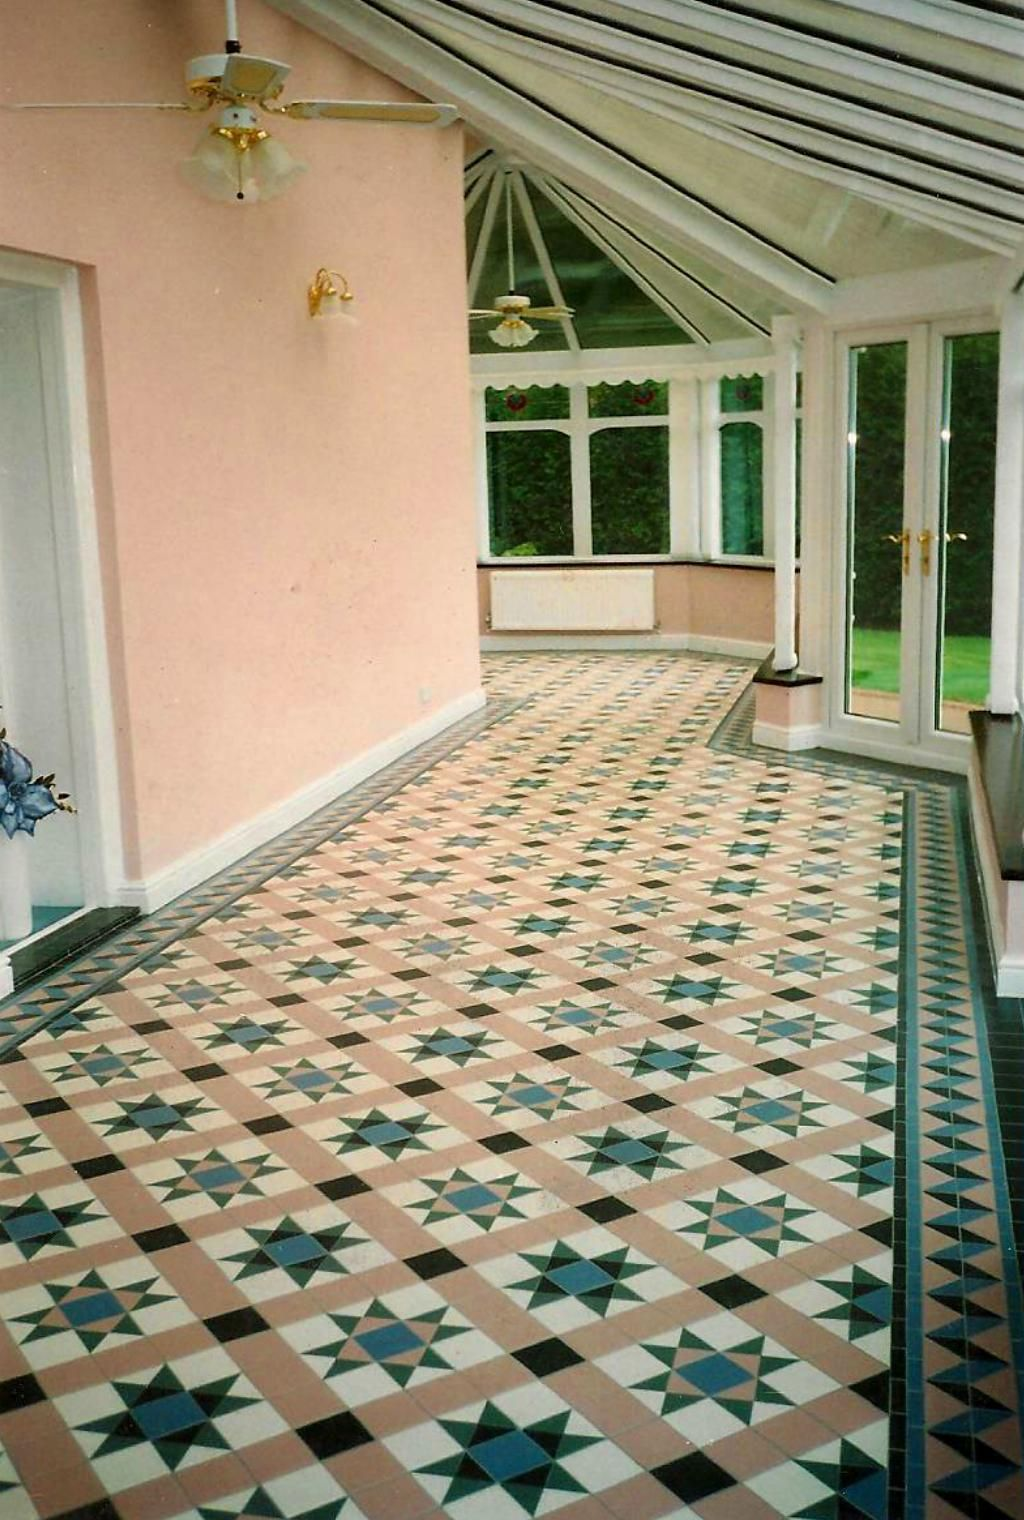 Stunning Victorian geometric tiled floor in this superb conservatory ...